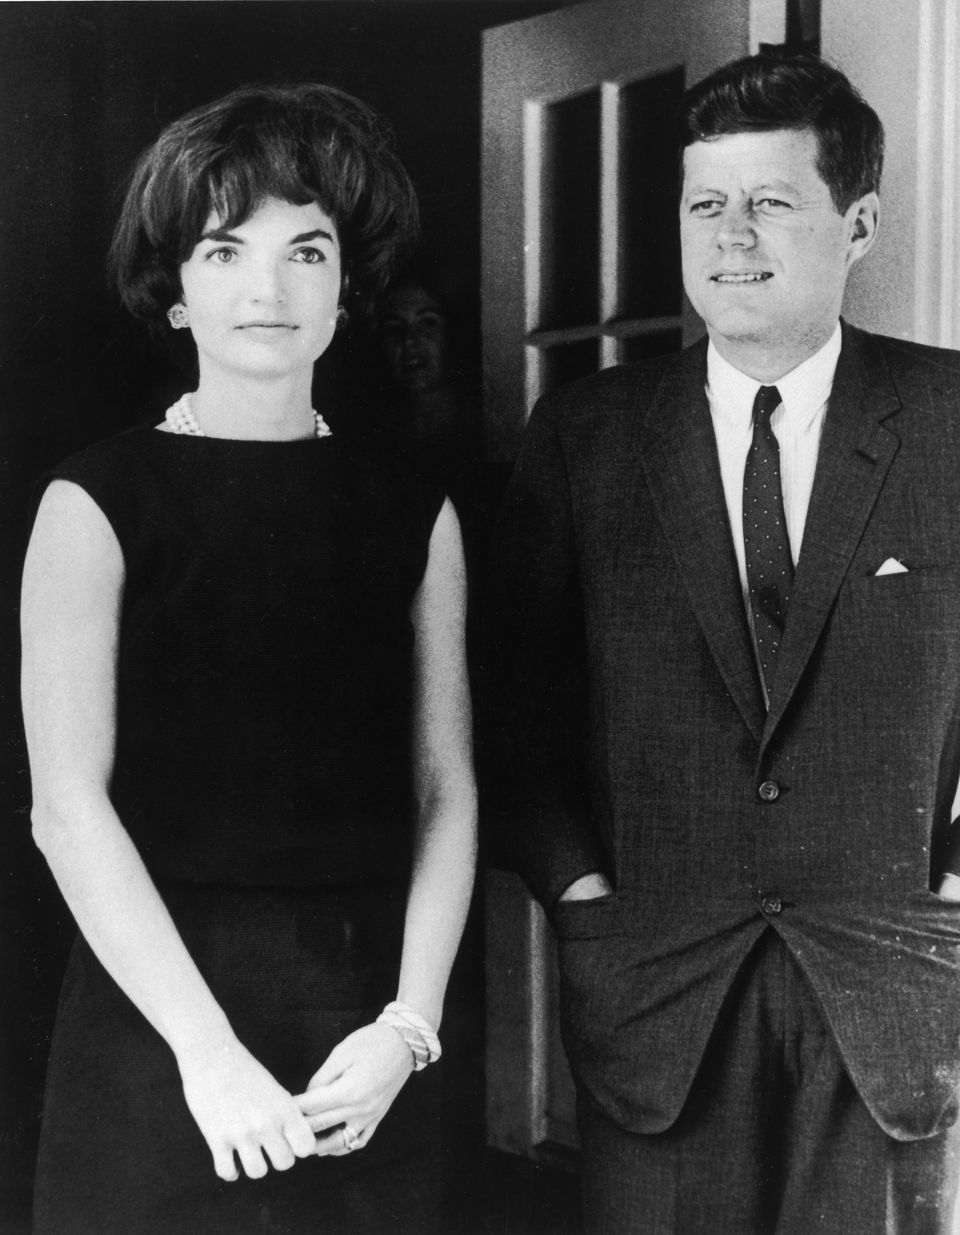 Jacqueline Kennedy (1929 - 1994) stands with her husband, President John F. Kennedy (1917 - 1963), in the door of the White House, Washington, D.C., circa 1961. | Source: Getty Images